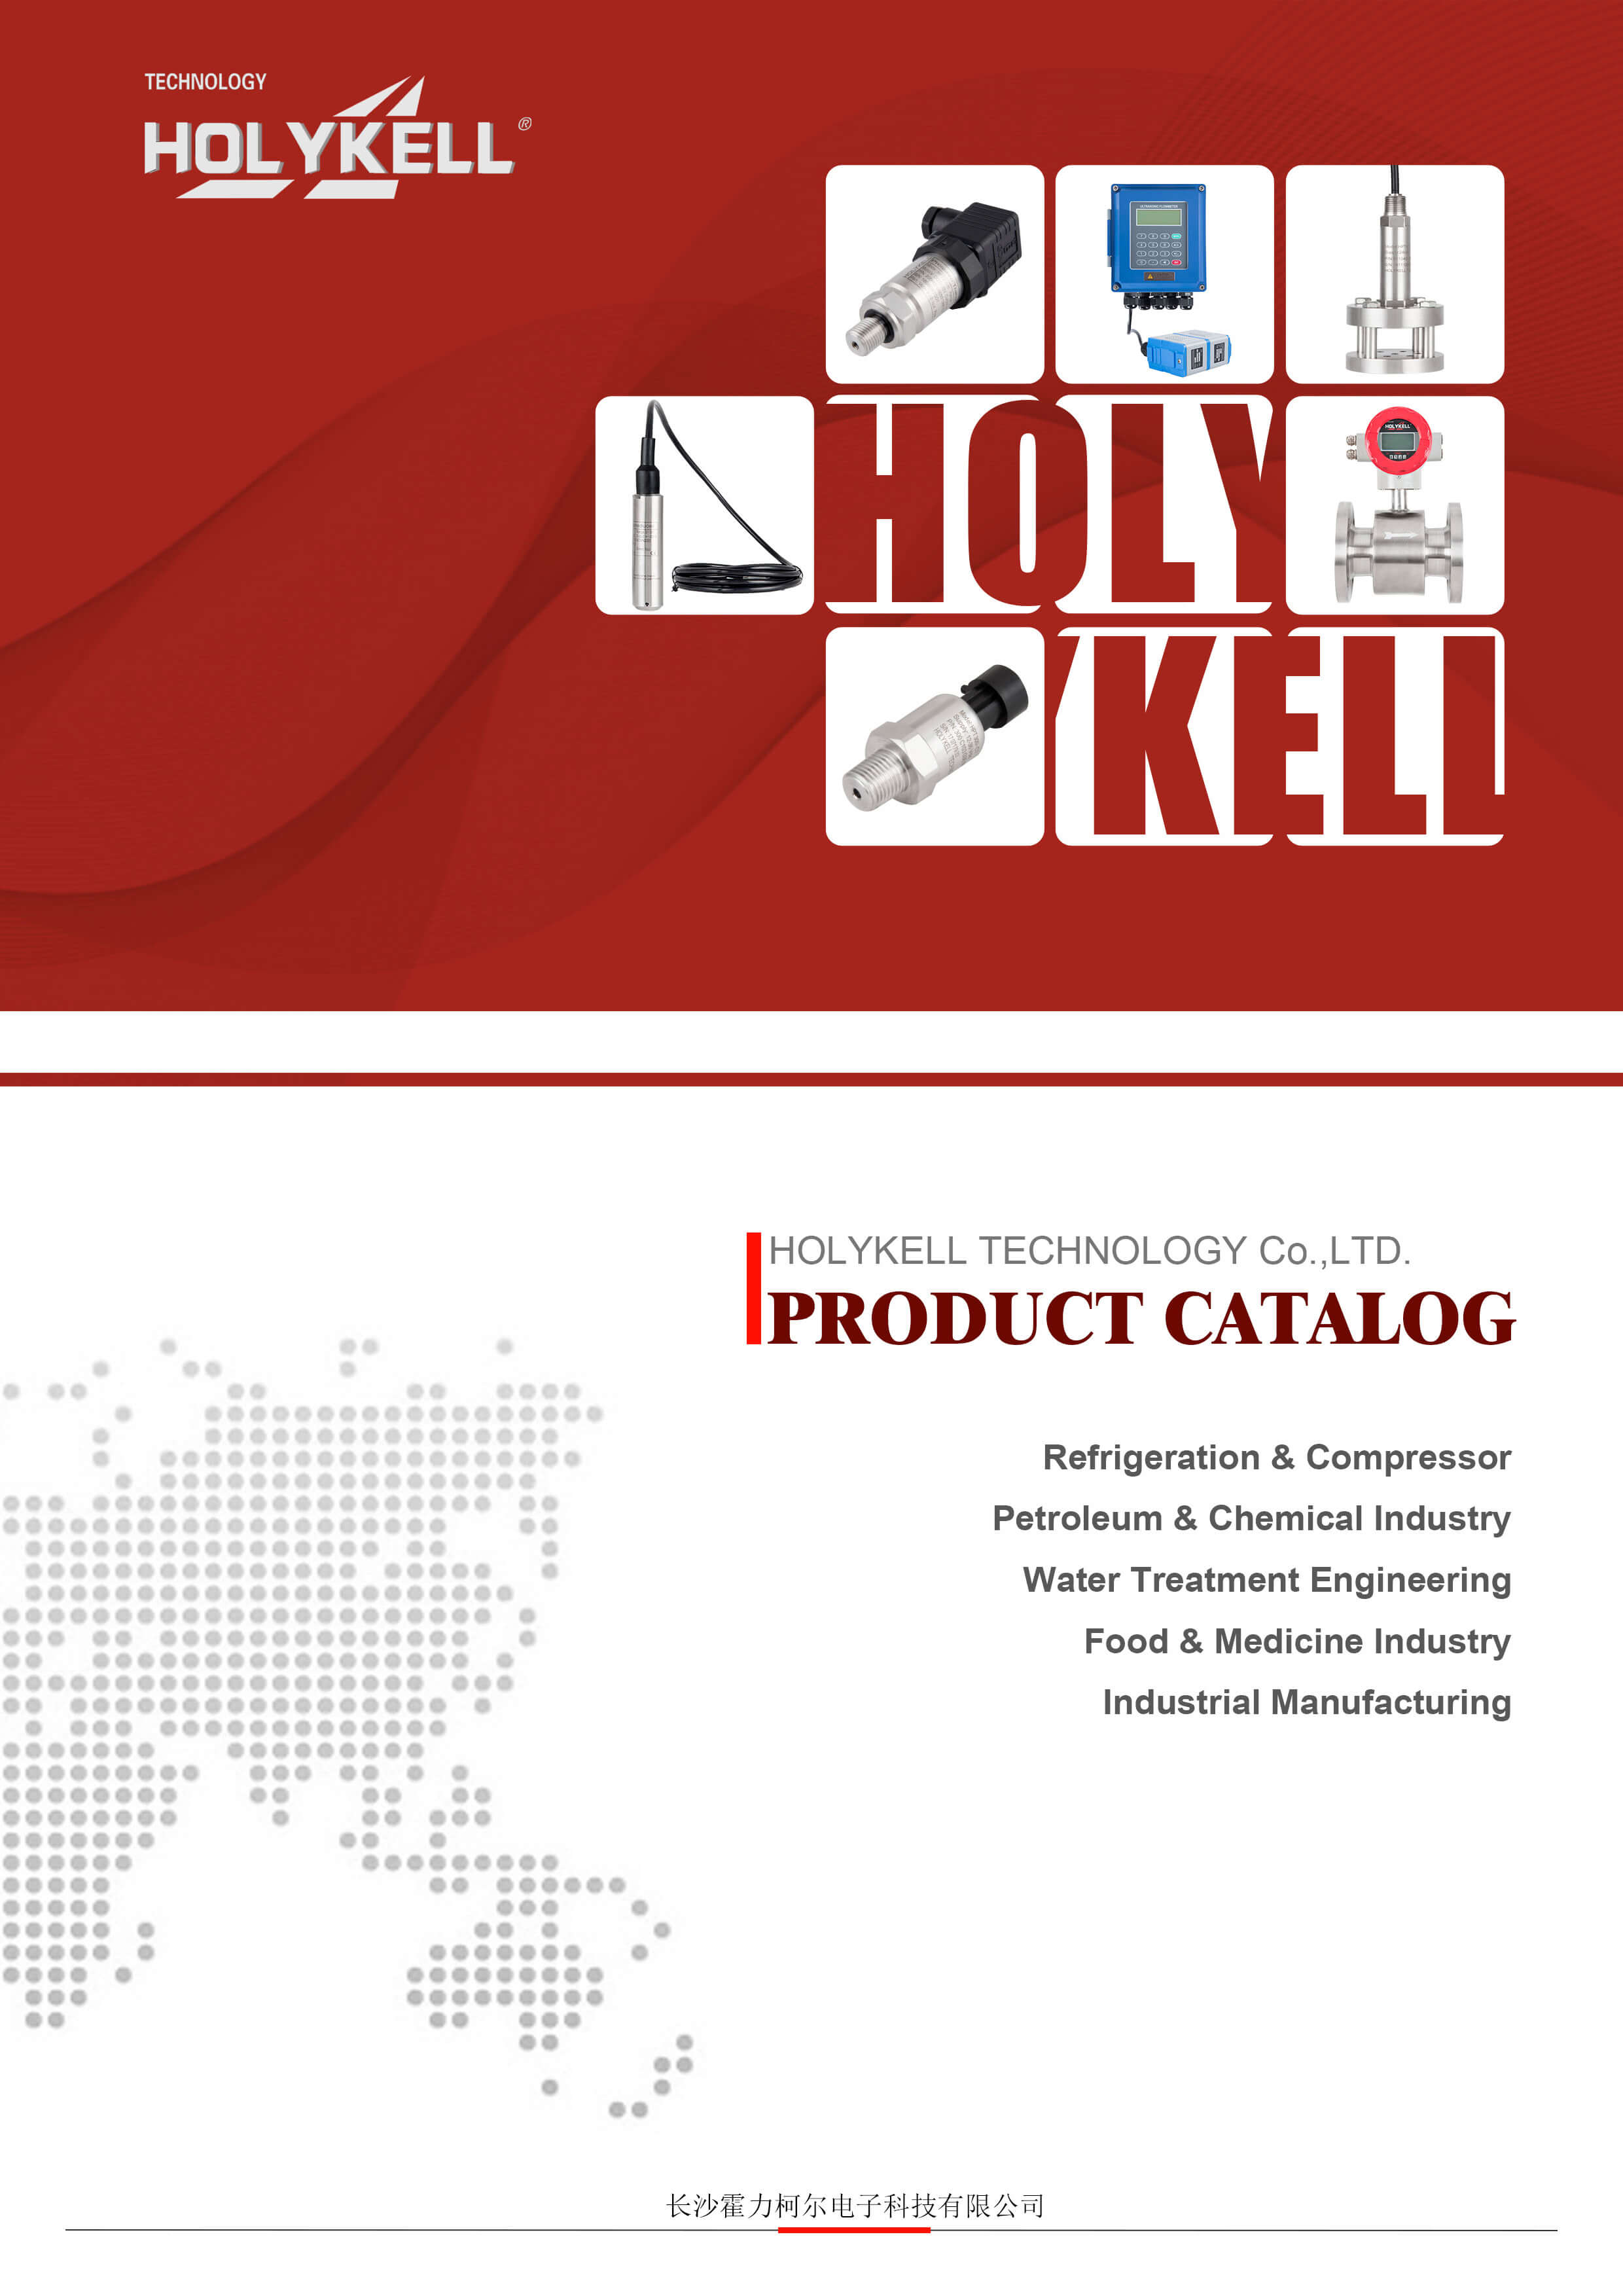 HOLYKELL-Catalogue-Level-2019